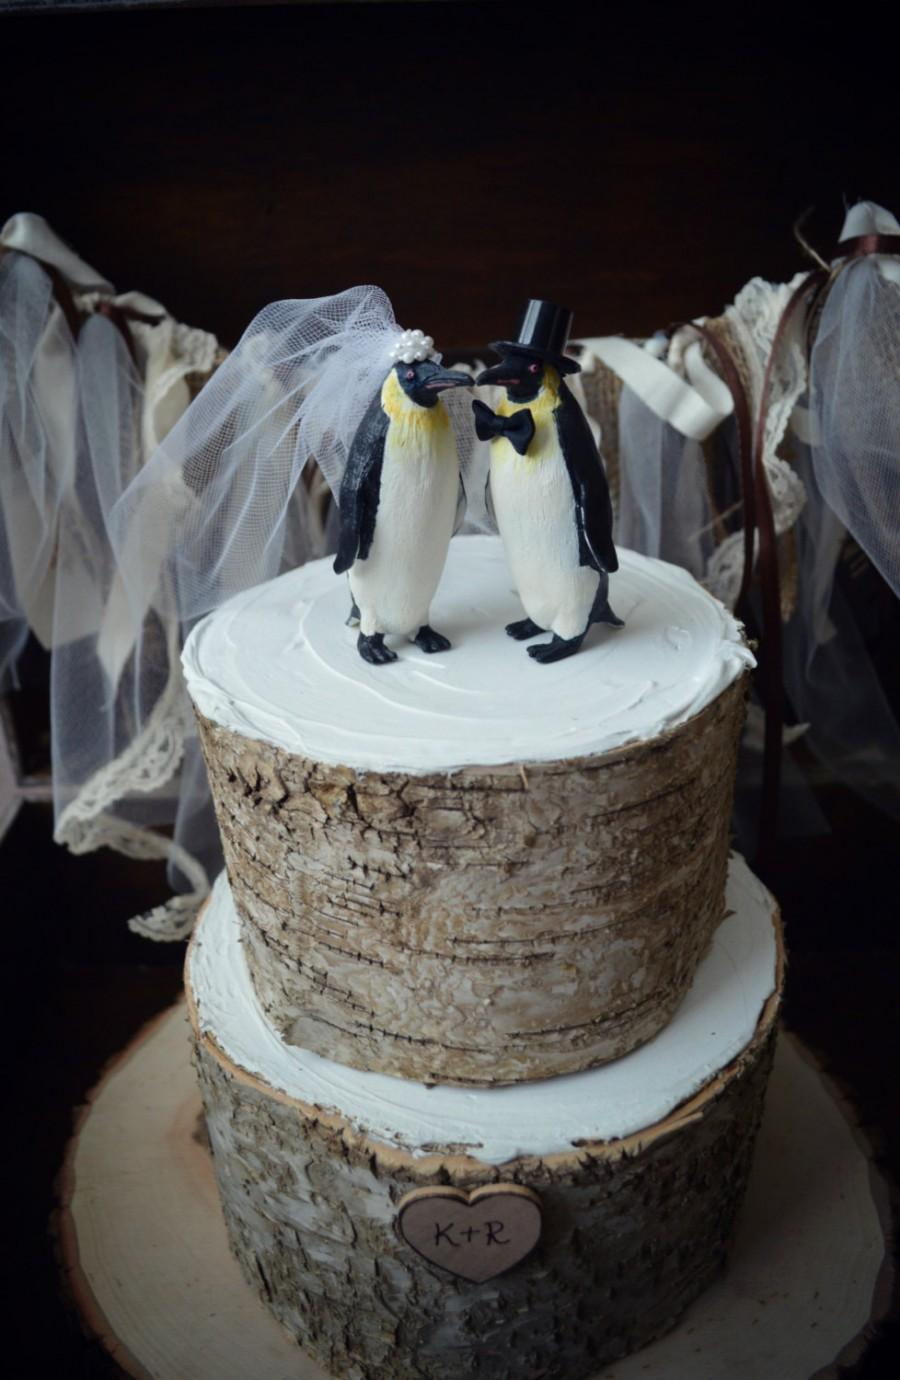 Dekor - Penguin-wedding-cake #2491846 - Weddbook